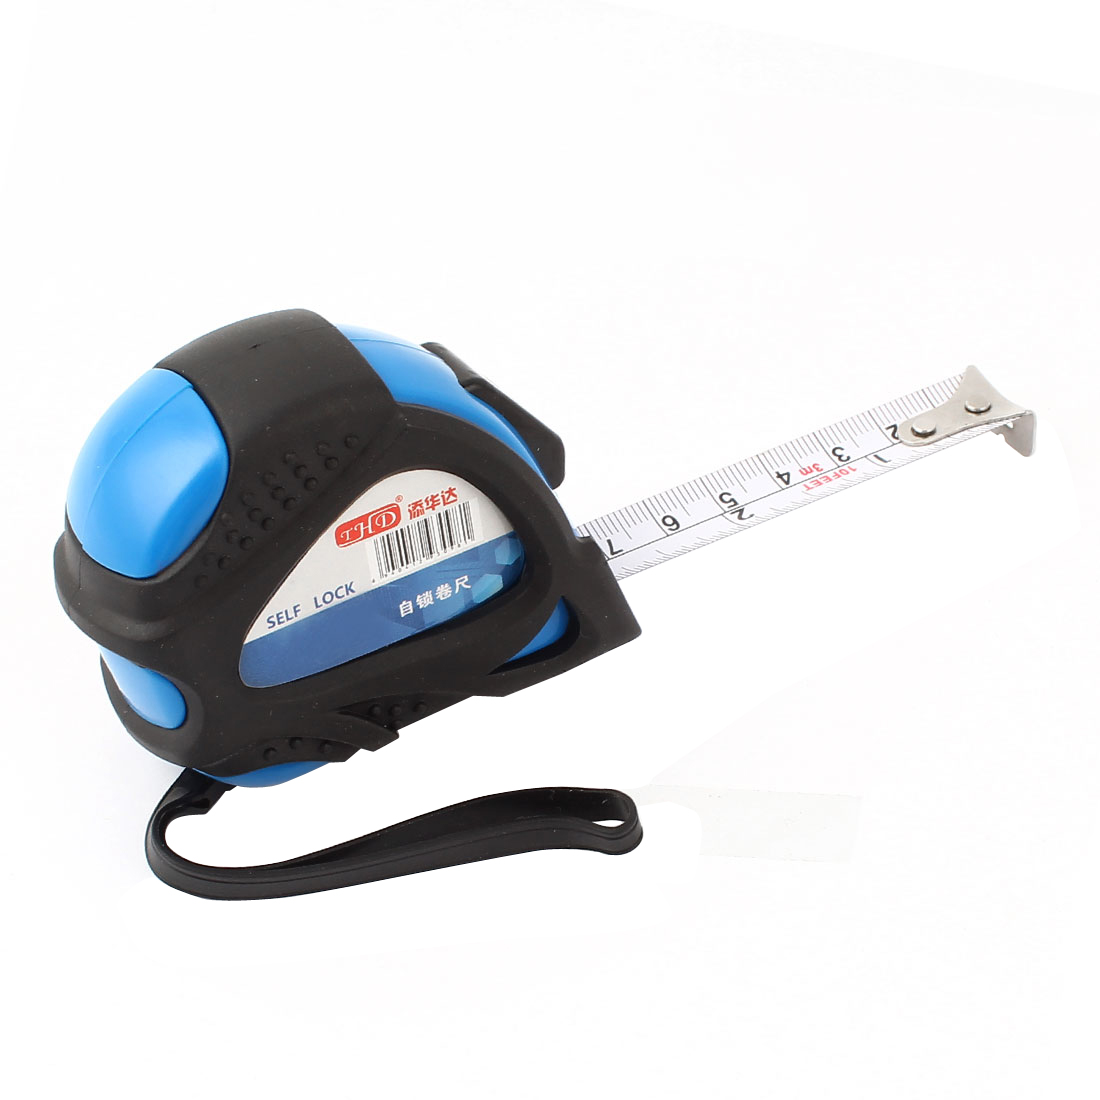 Black Blue Plastic Housing Self Lock Metric Measure Tape Ruler 0-3 Meters